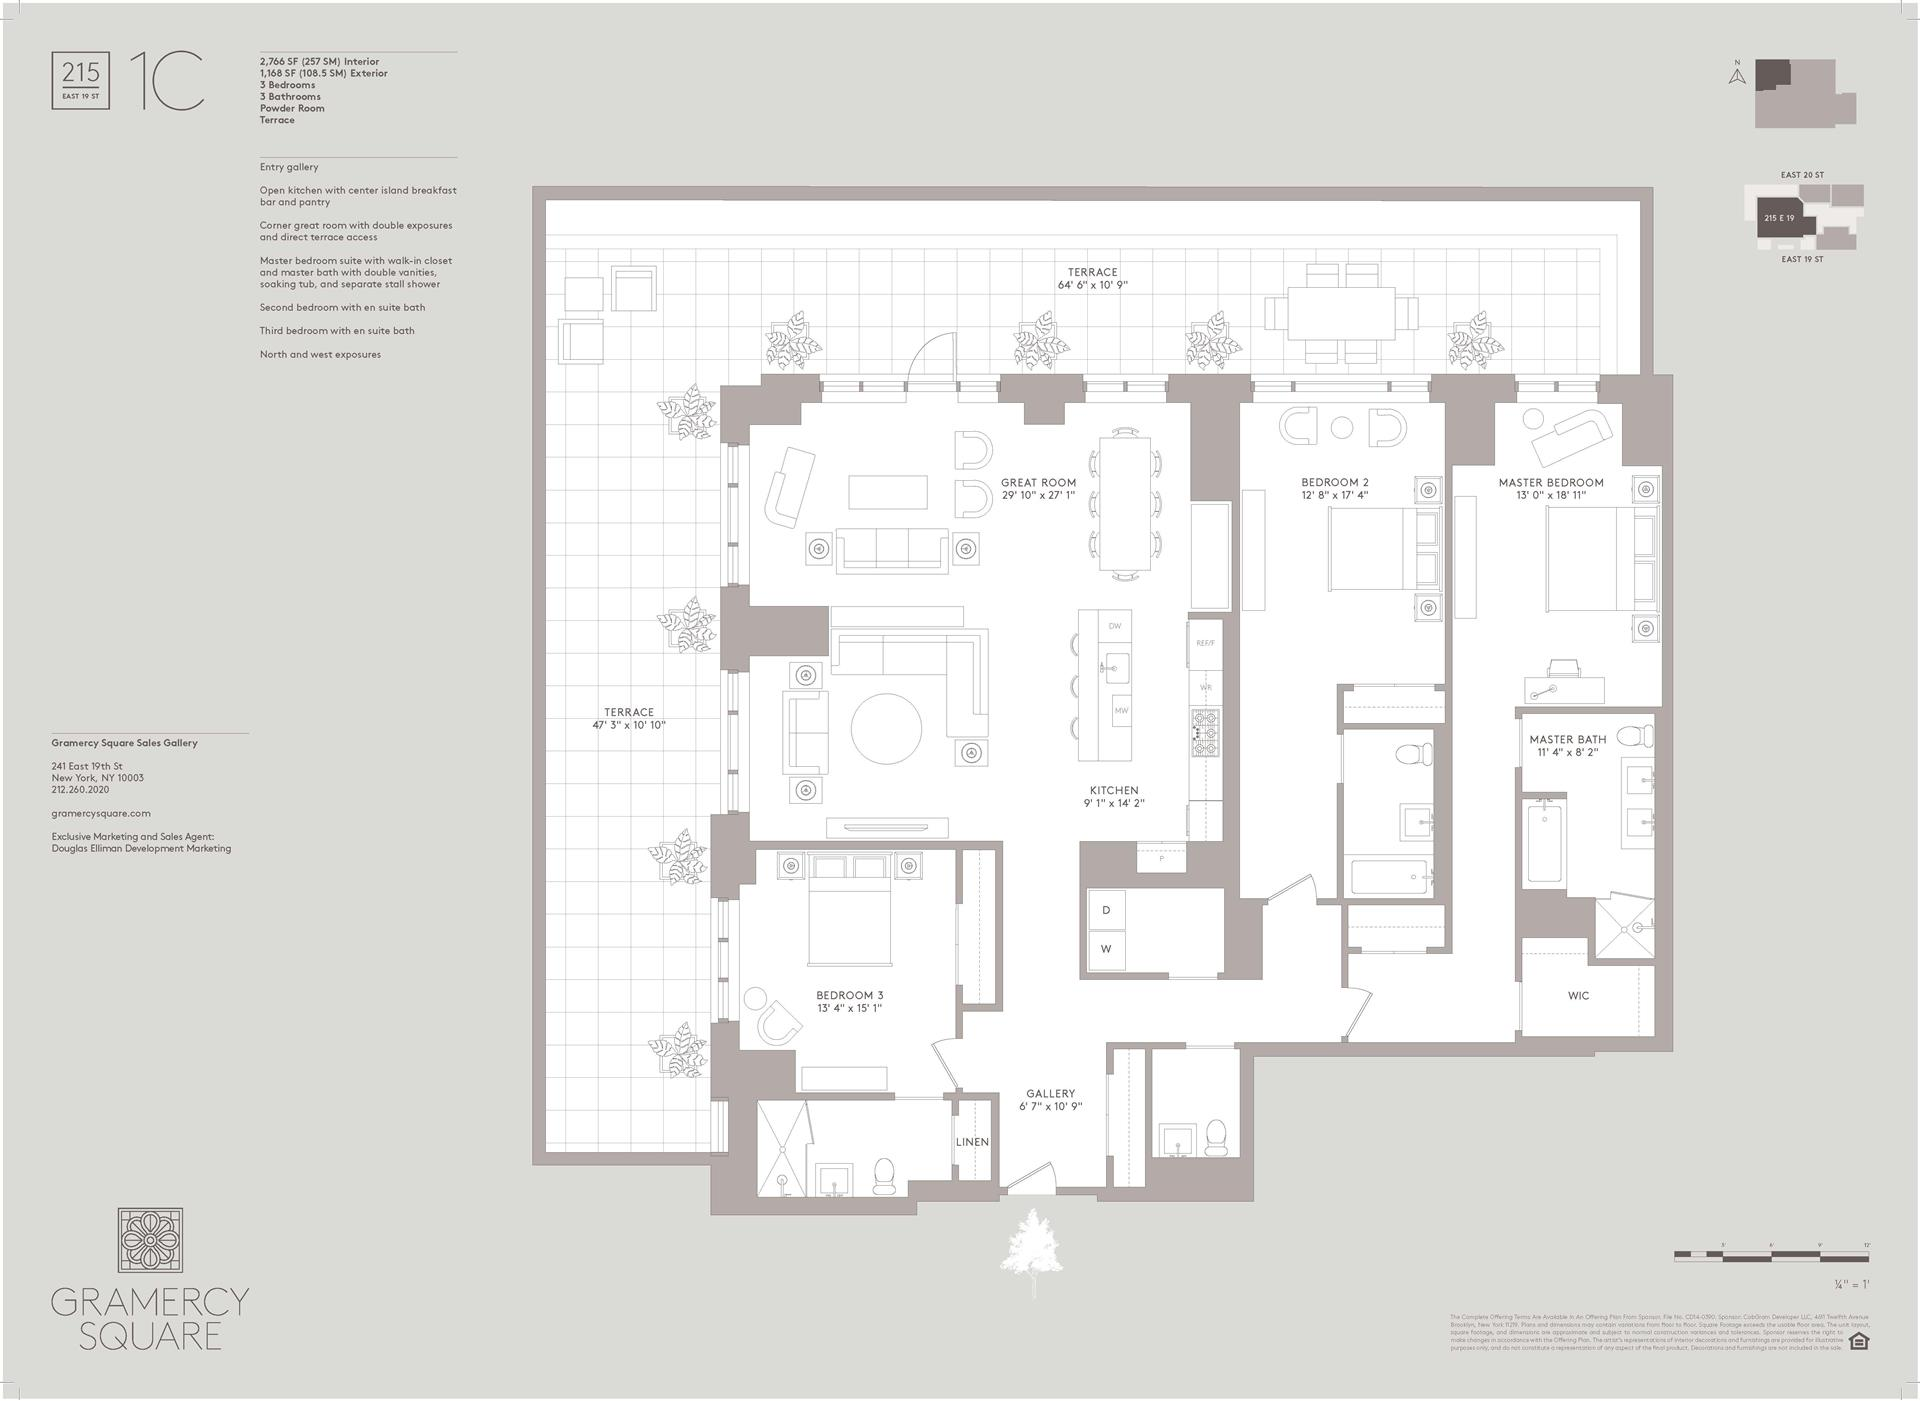 Floor plan of Gramercy Square, 215 East 19th St, 1C - Gramercy - Union Square, New York